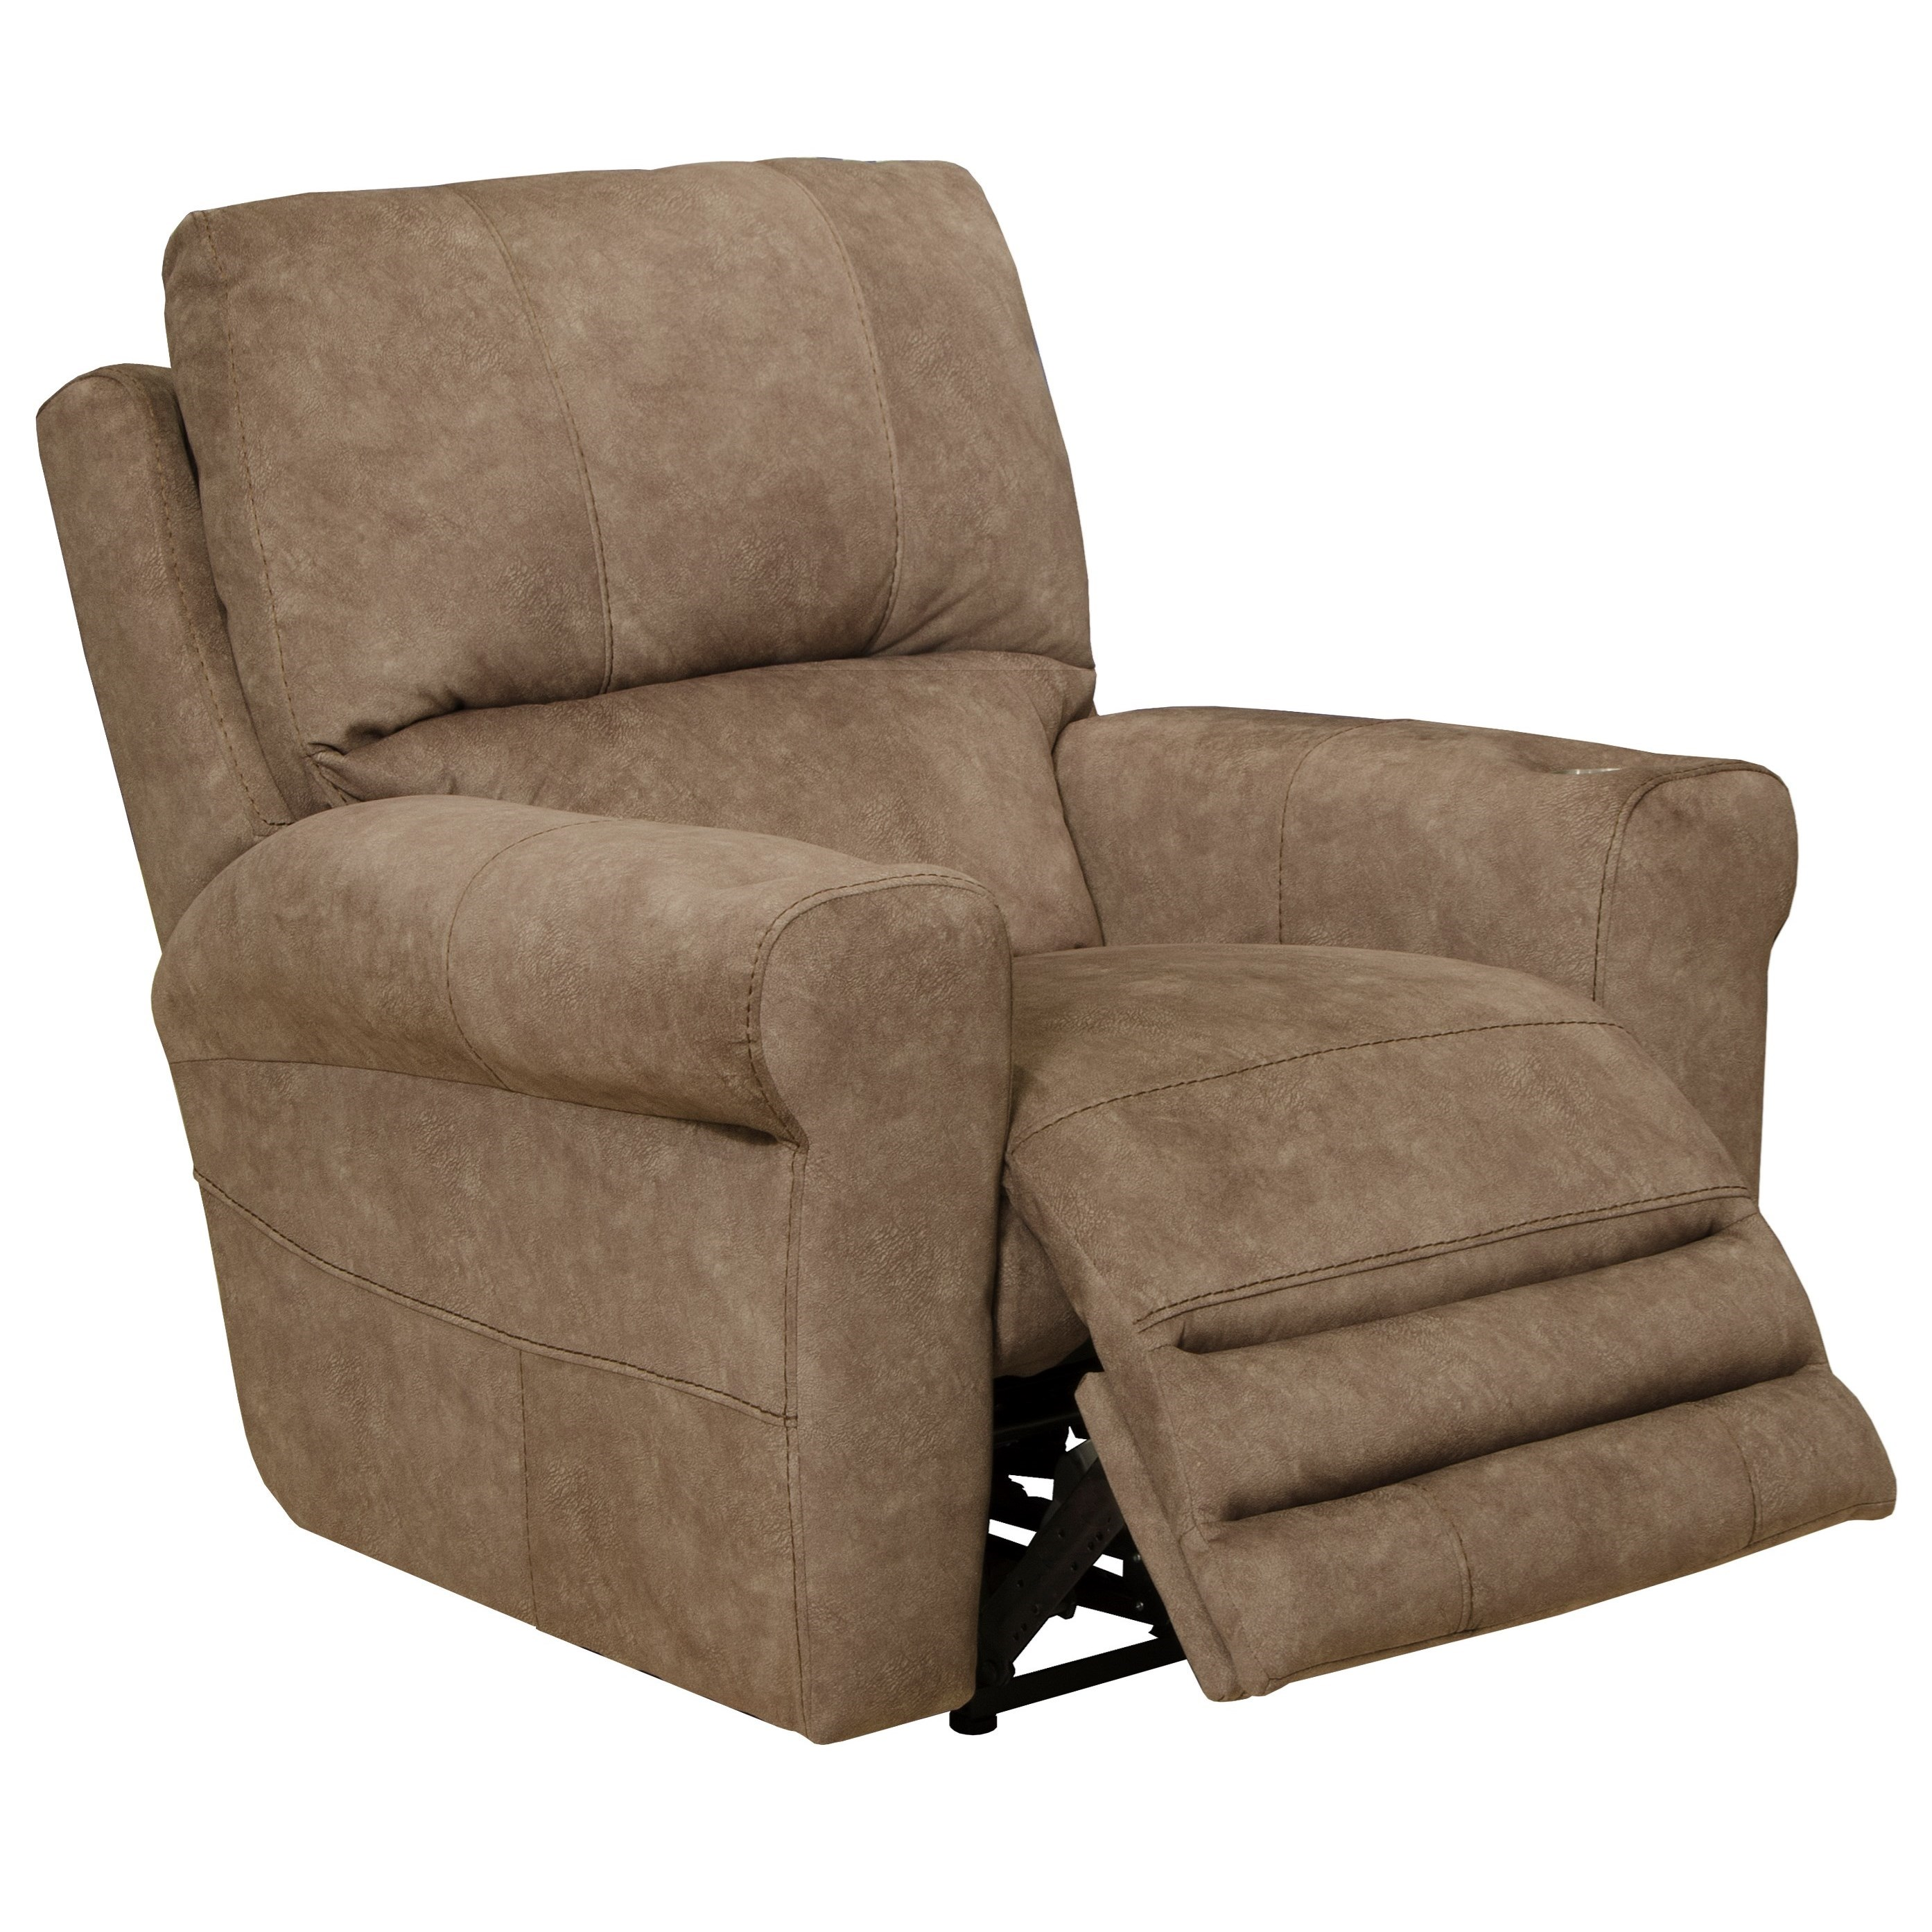 Vance Voice-Controlled Power Lay Flat Recliner by Catnapper at Standard Furniture